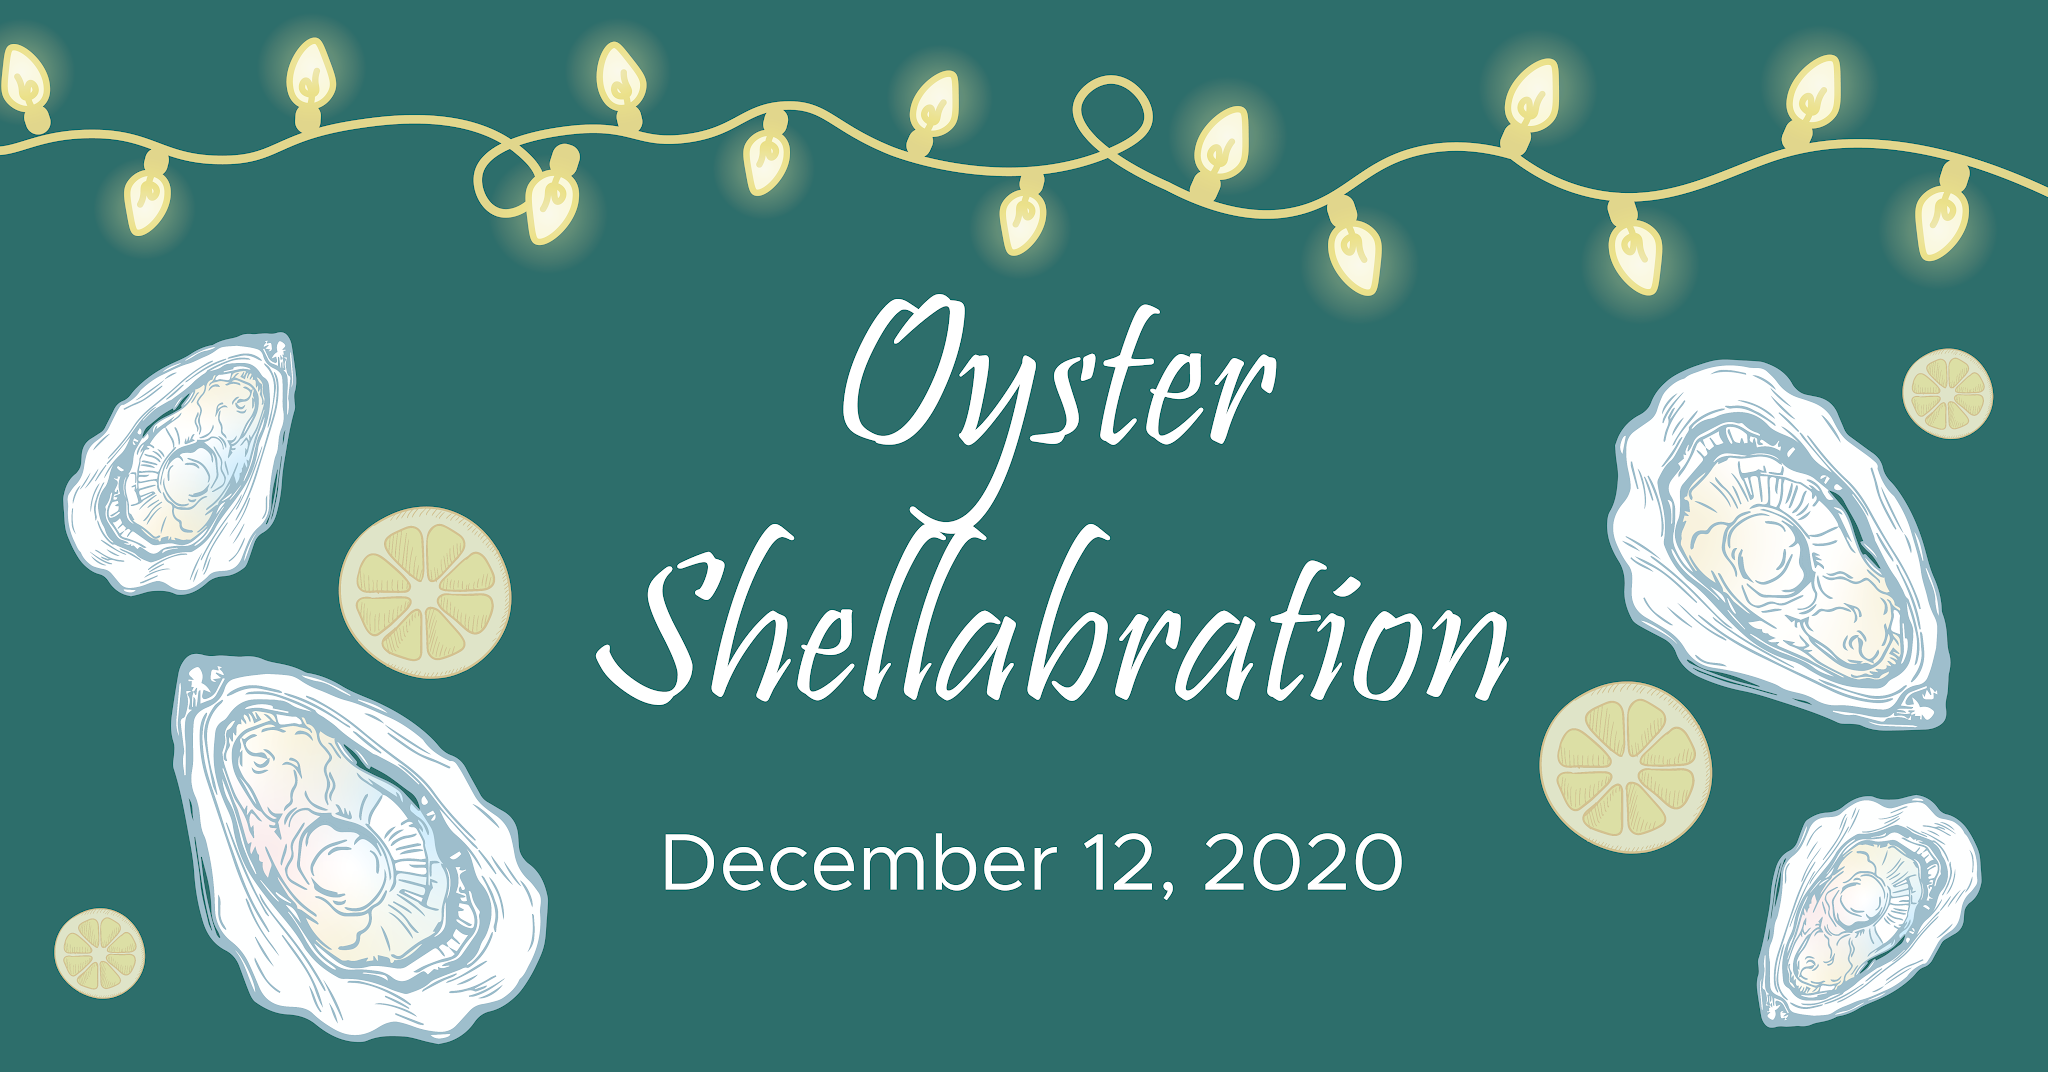 Join us for Friends of the Rappahannock's Fundraiser, Oyster Shellabration: A Rogue Oyster Experience